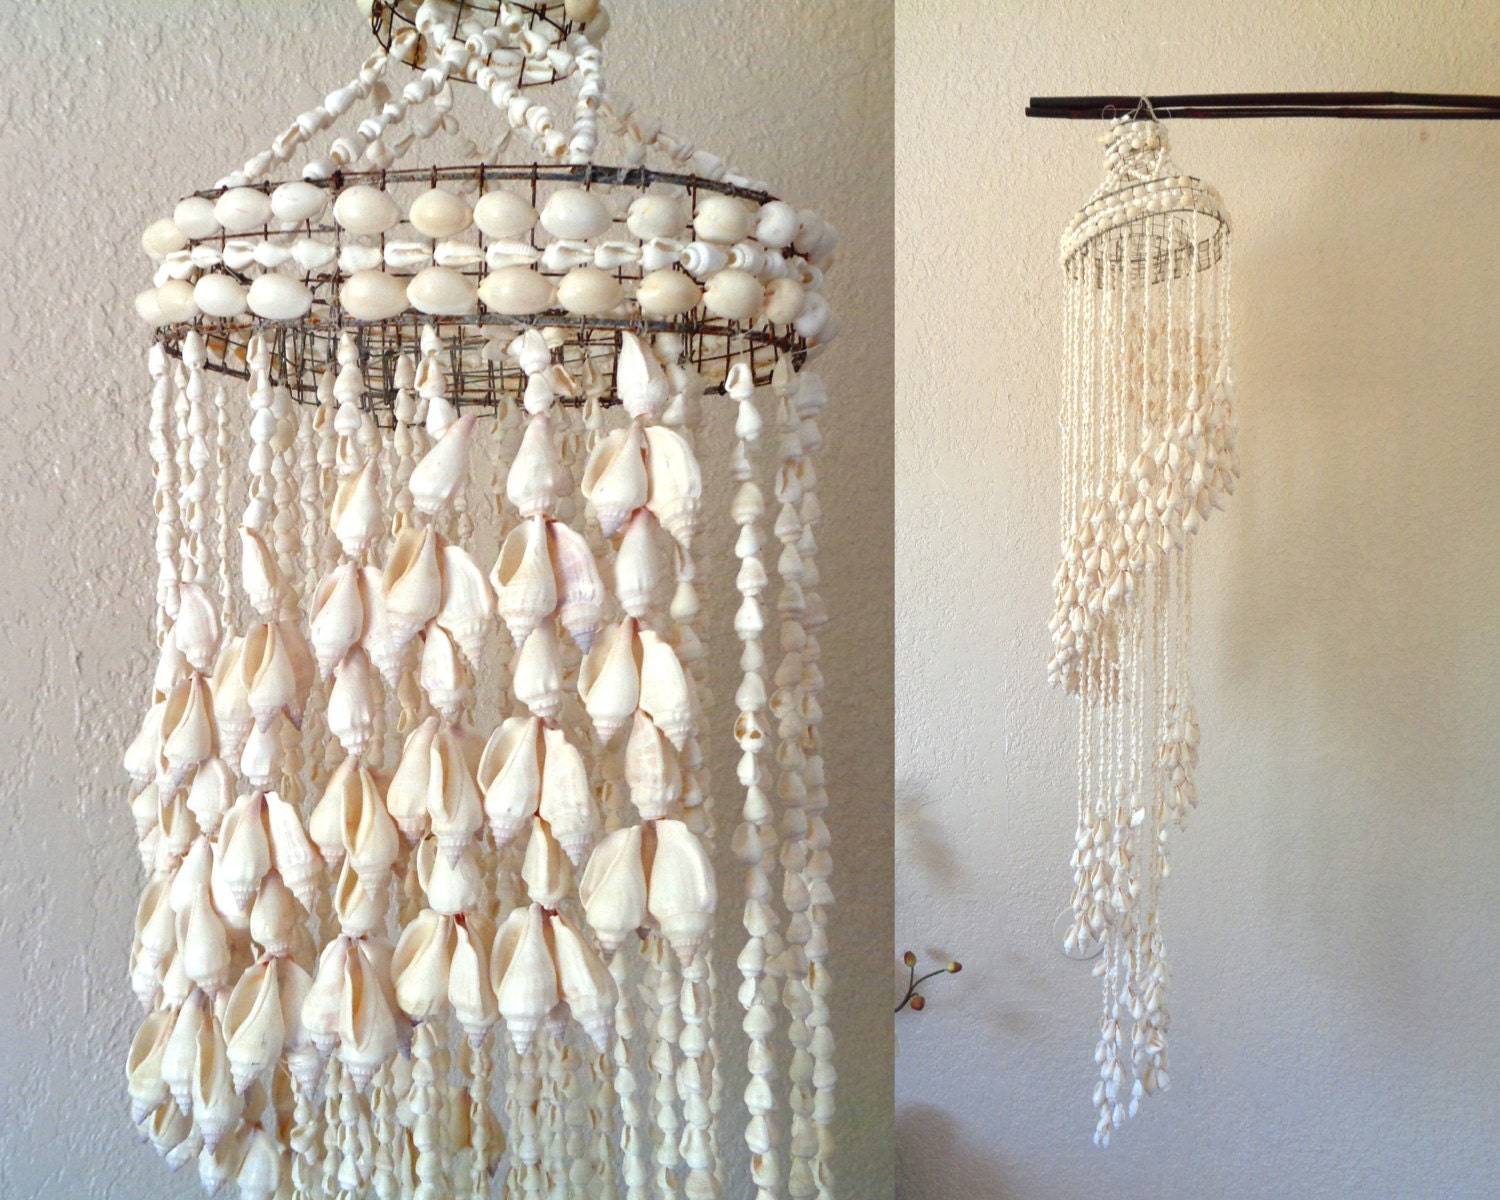 Hanging Seashell Mobile Chandelier Display Tall Vintage